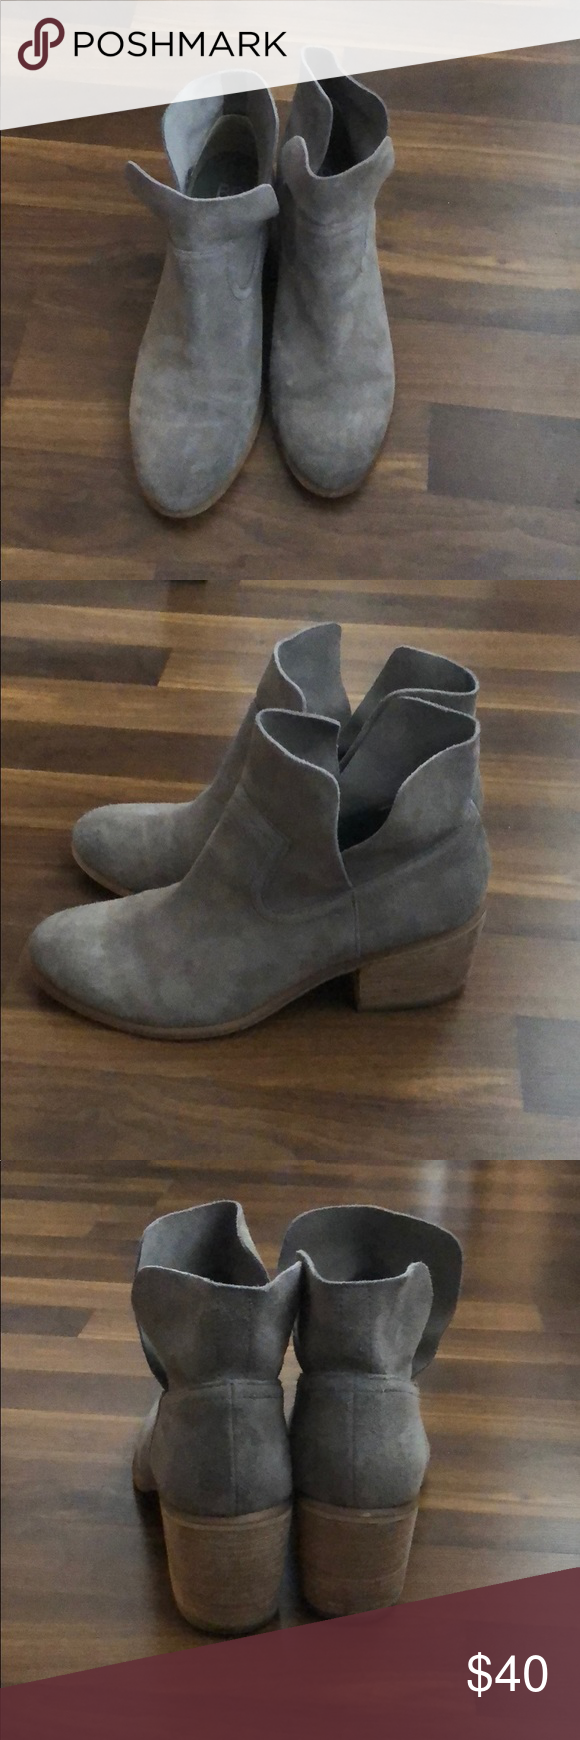 26f6cecbf97 BP Brice Notched Booties Excellent Condition. Size 9.5. Worn only a handful  of times